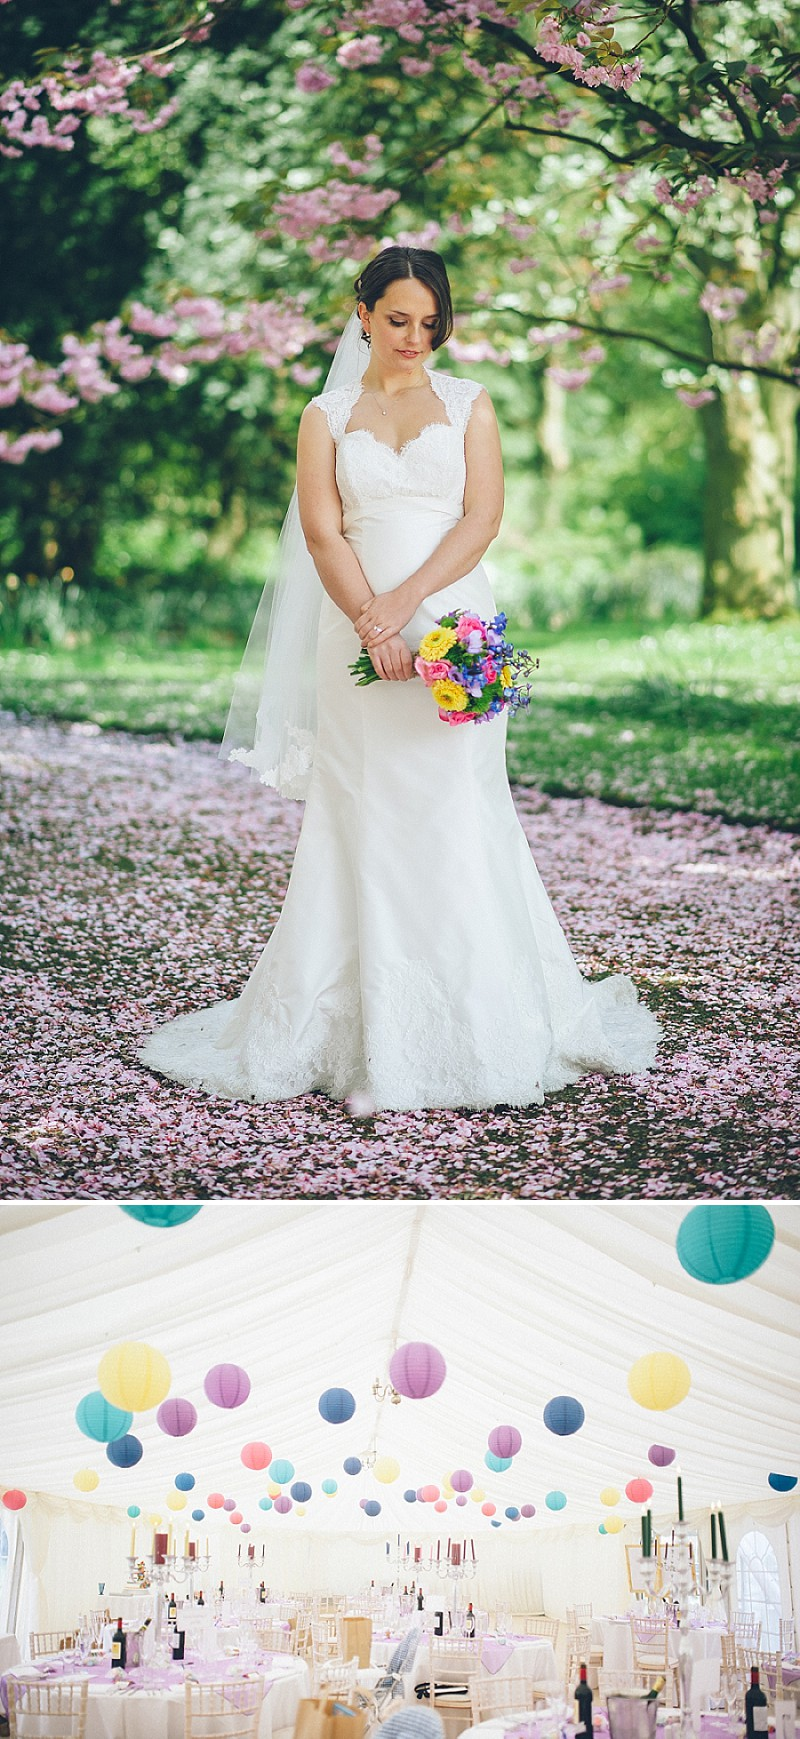 A wedding at Newburgh Priory with a bride in a Paloma Blanca lace dress and bridesmaid in assorted multi-coloured dresses_0164